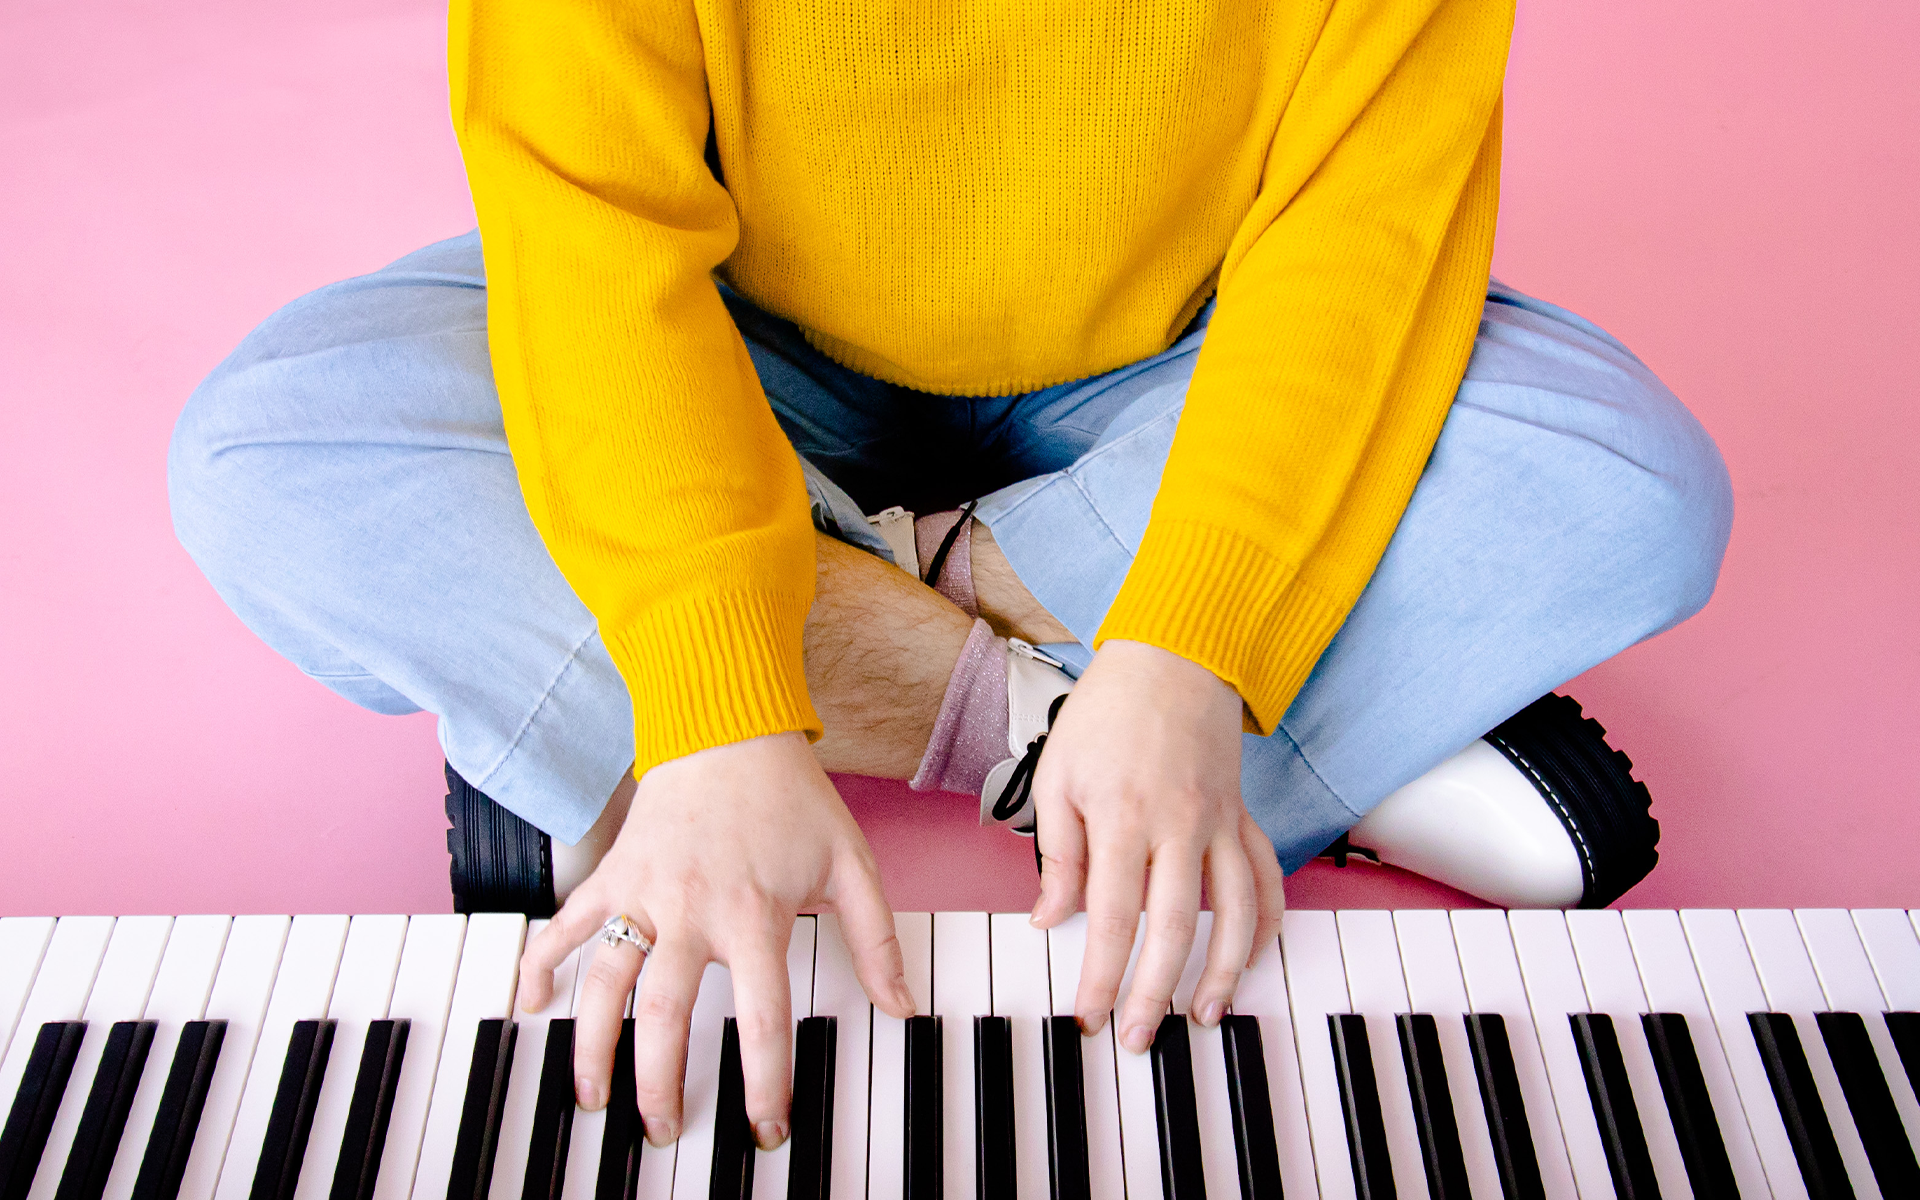 desktop wallpaper of a photo of a keyboard on a pink floor and hands with yellow sleeves playing it